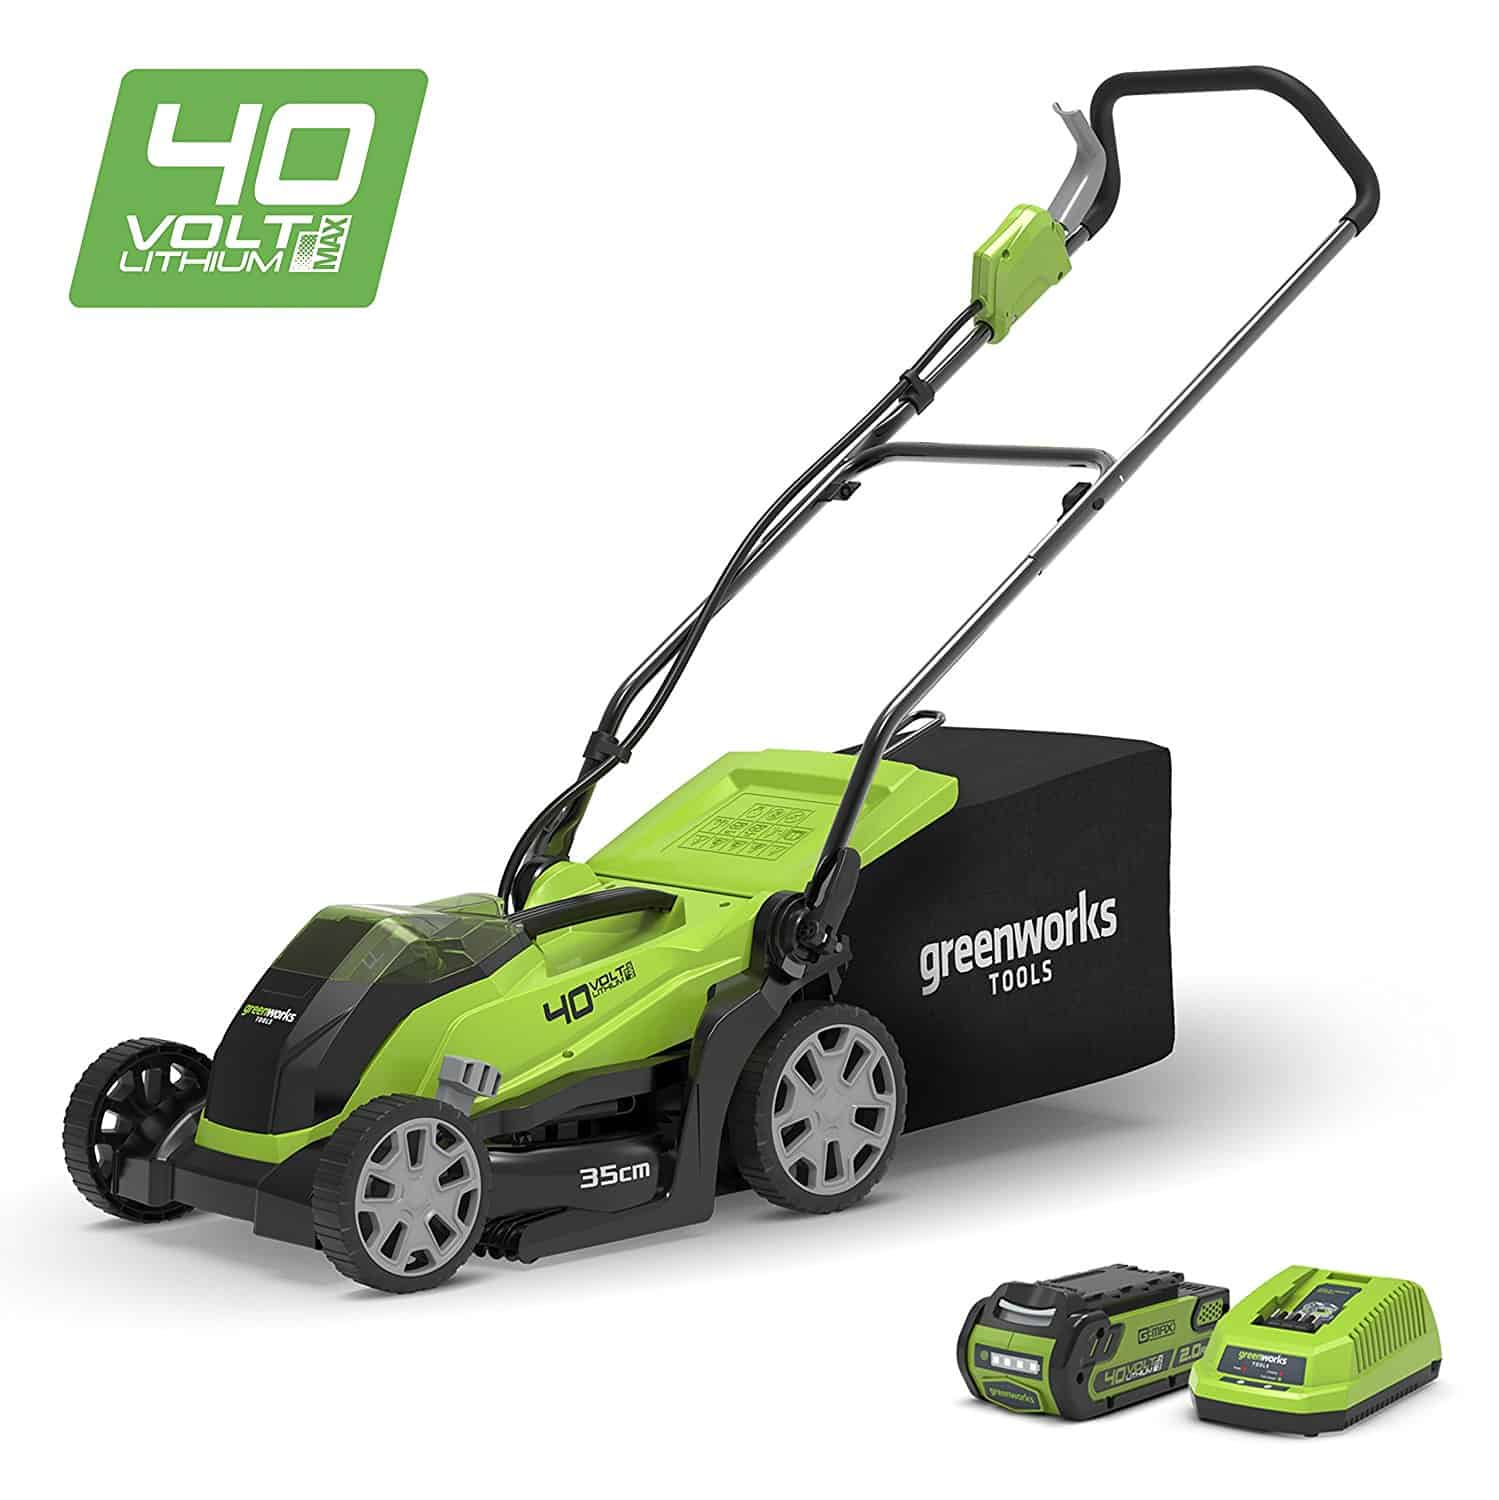 Greenworks 14-Inch 40V Cordless Lawn Mower Review 2019 14″ with 4Ah battery and charger – MO40B410